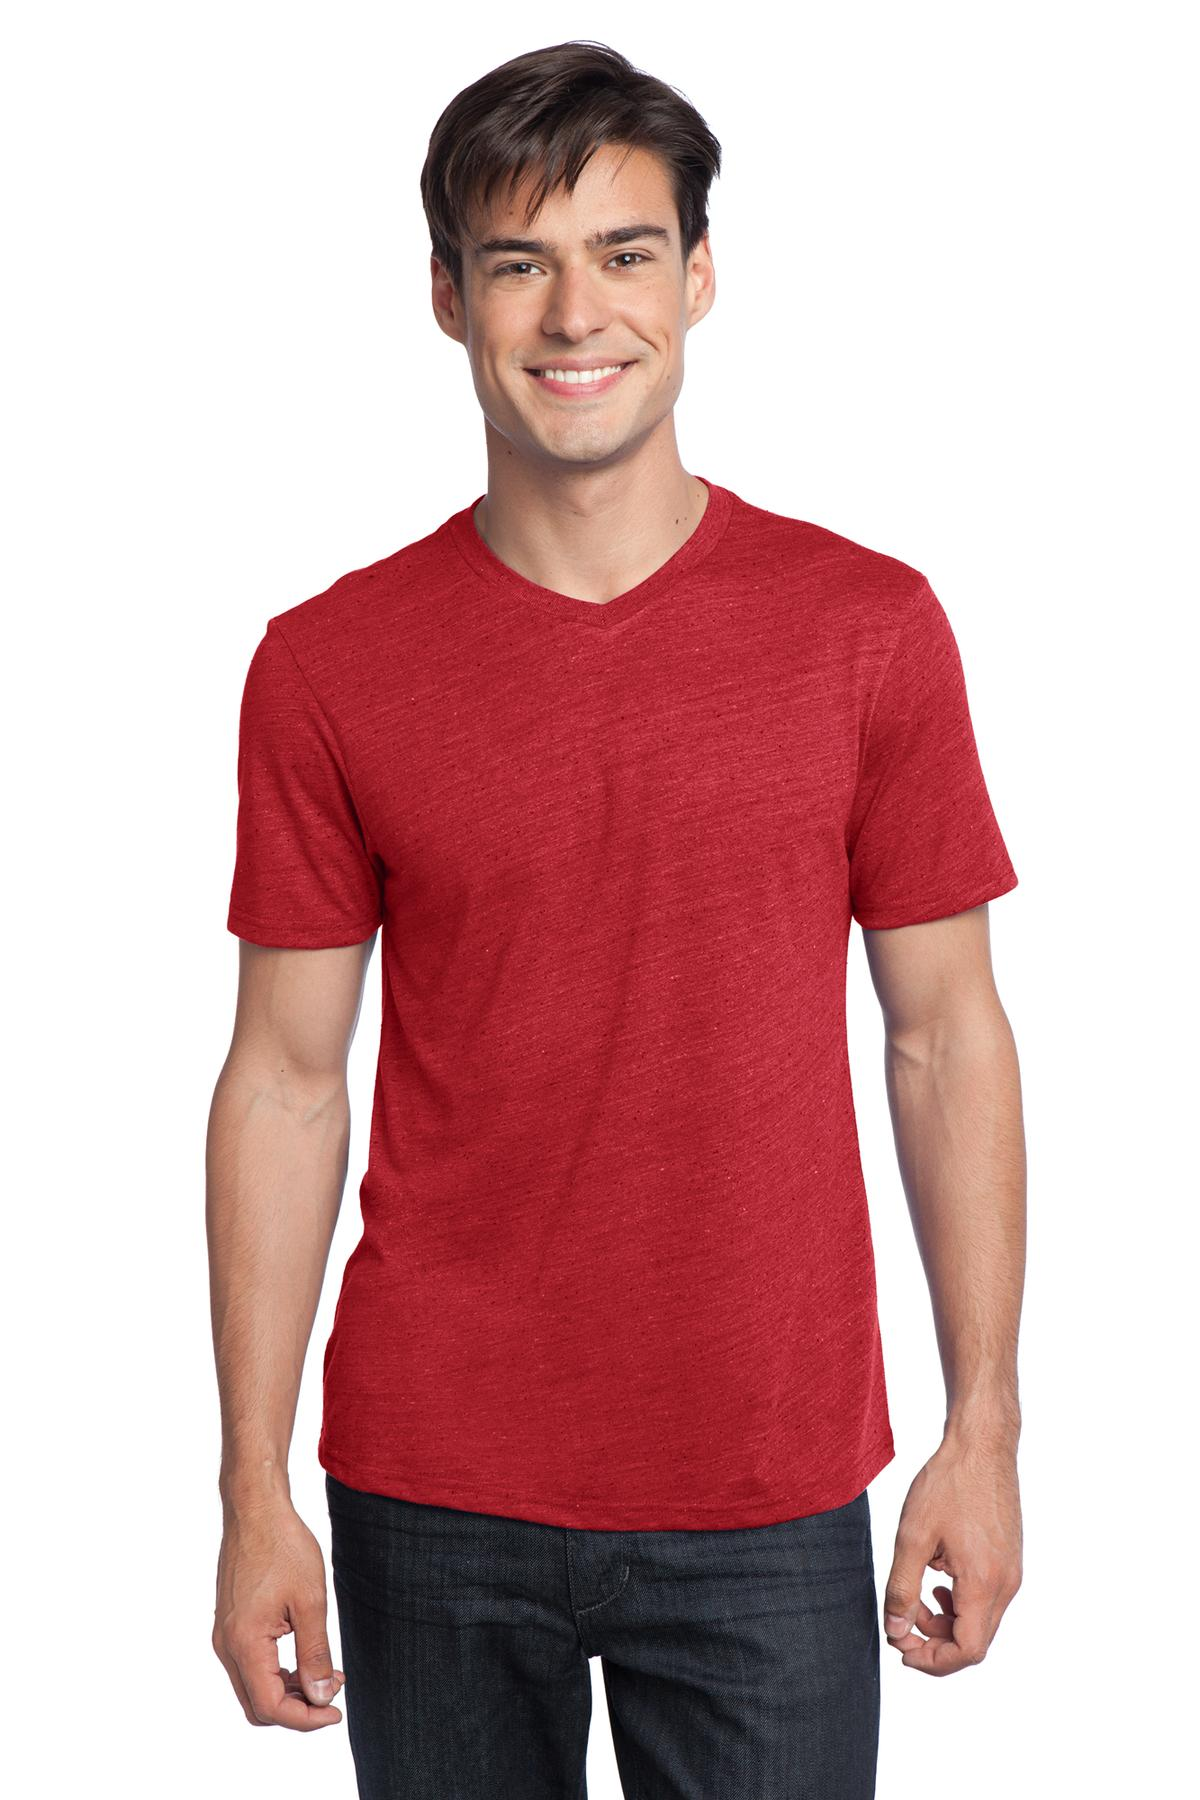 CLOSEOUT District - Young Mens Textured Notch Crew Tee. DT172